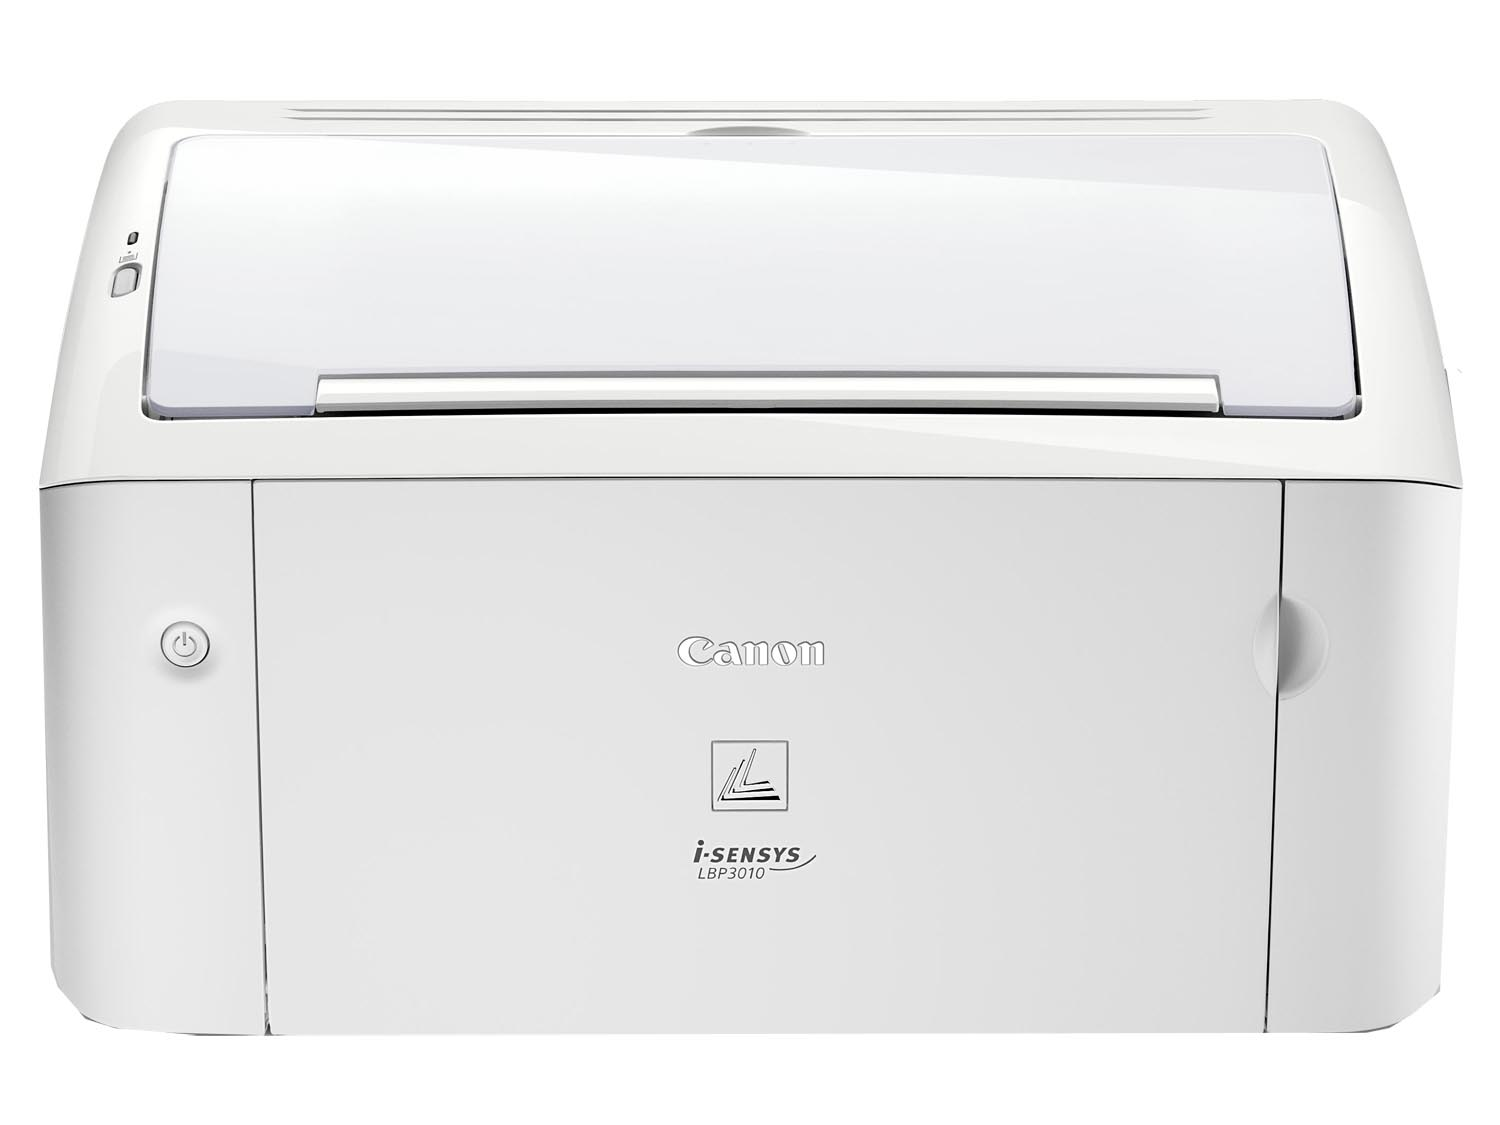 Canon imageclass mf3010 printer driver download free for windows.